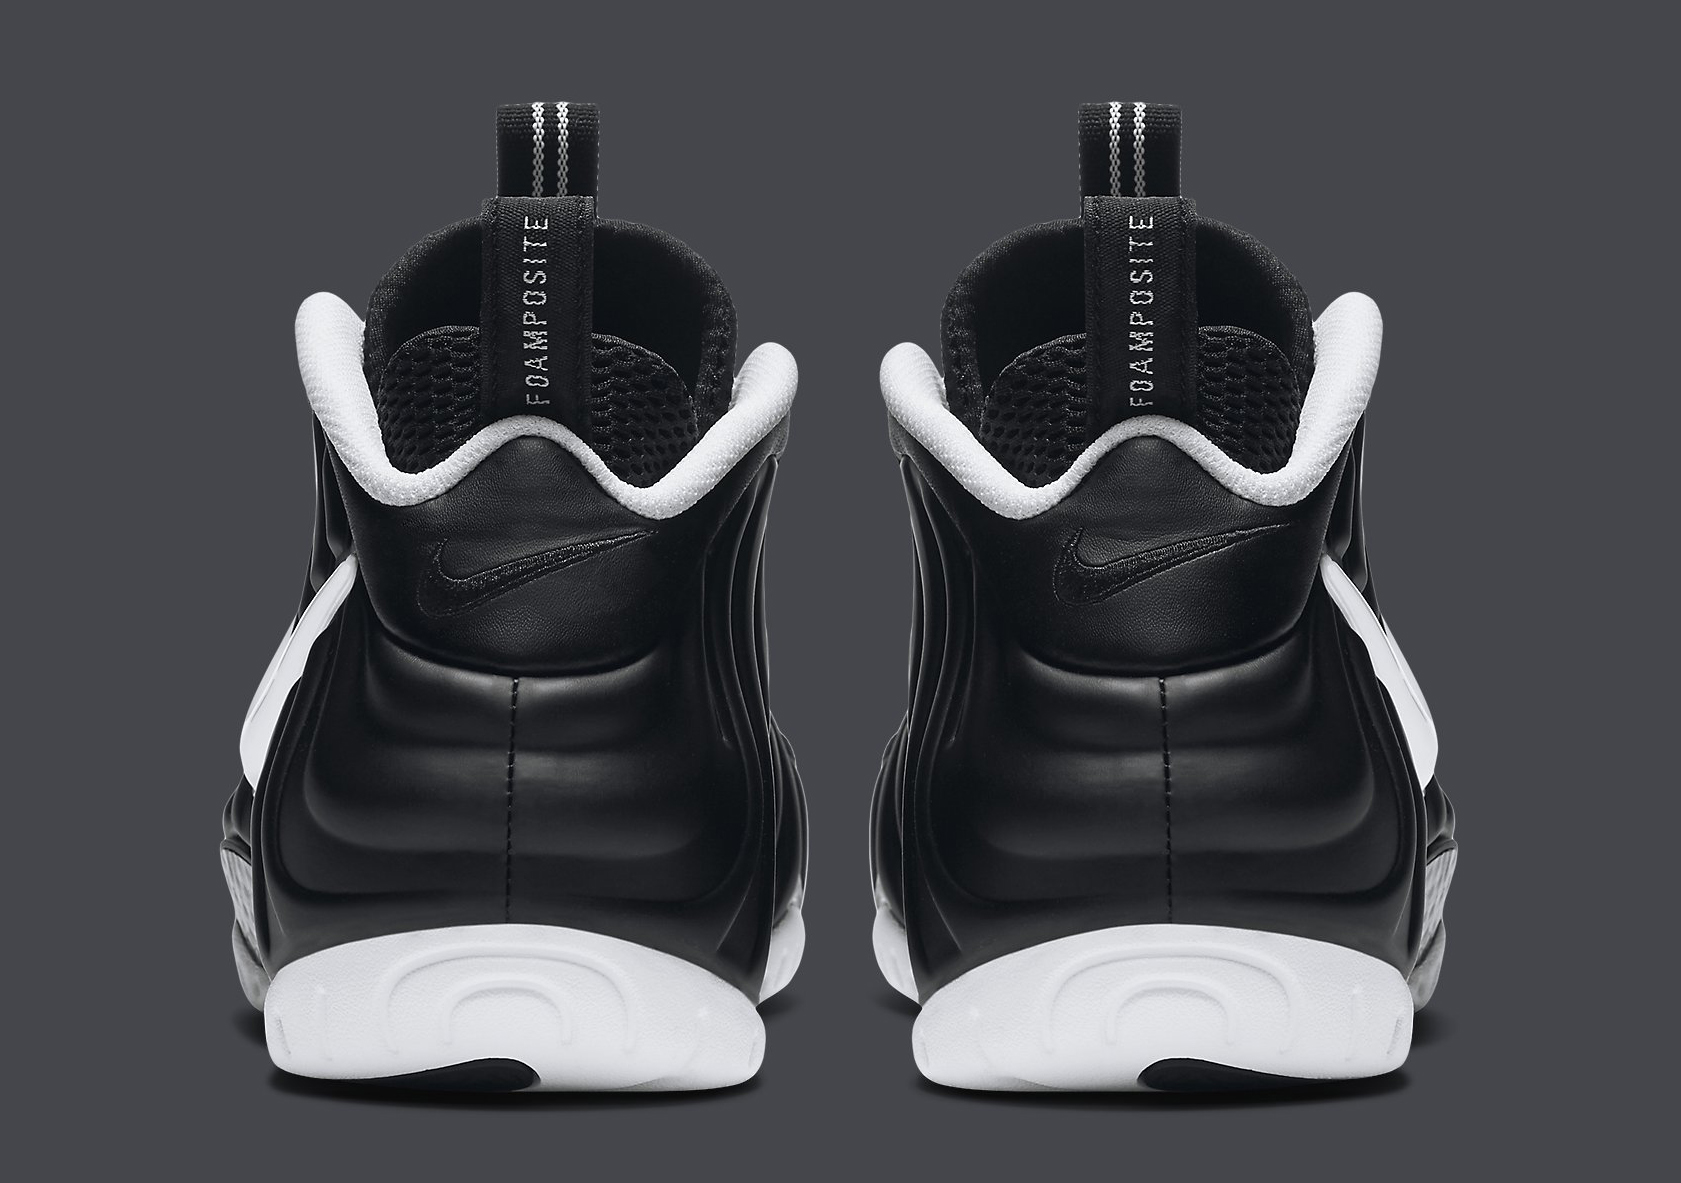 big sale 99081 b20b5 Nike Foamposite Pro Dr Doom Black Friday 624041-006 | Sole ...